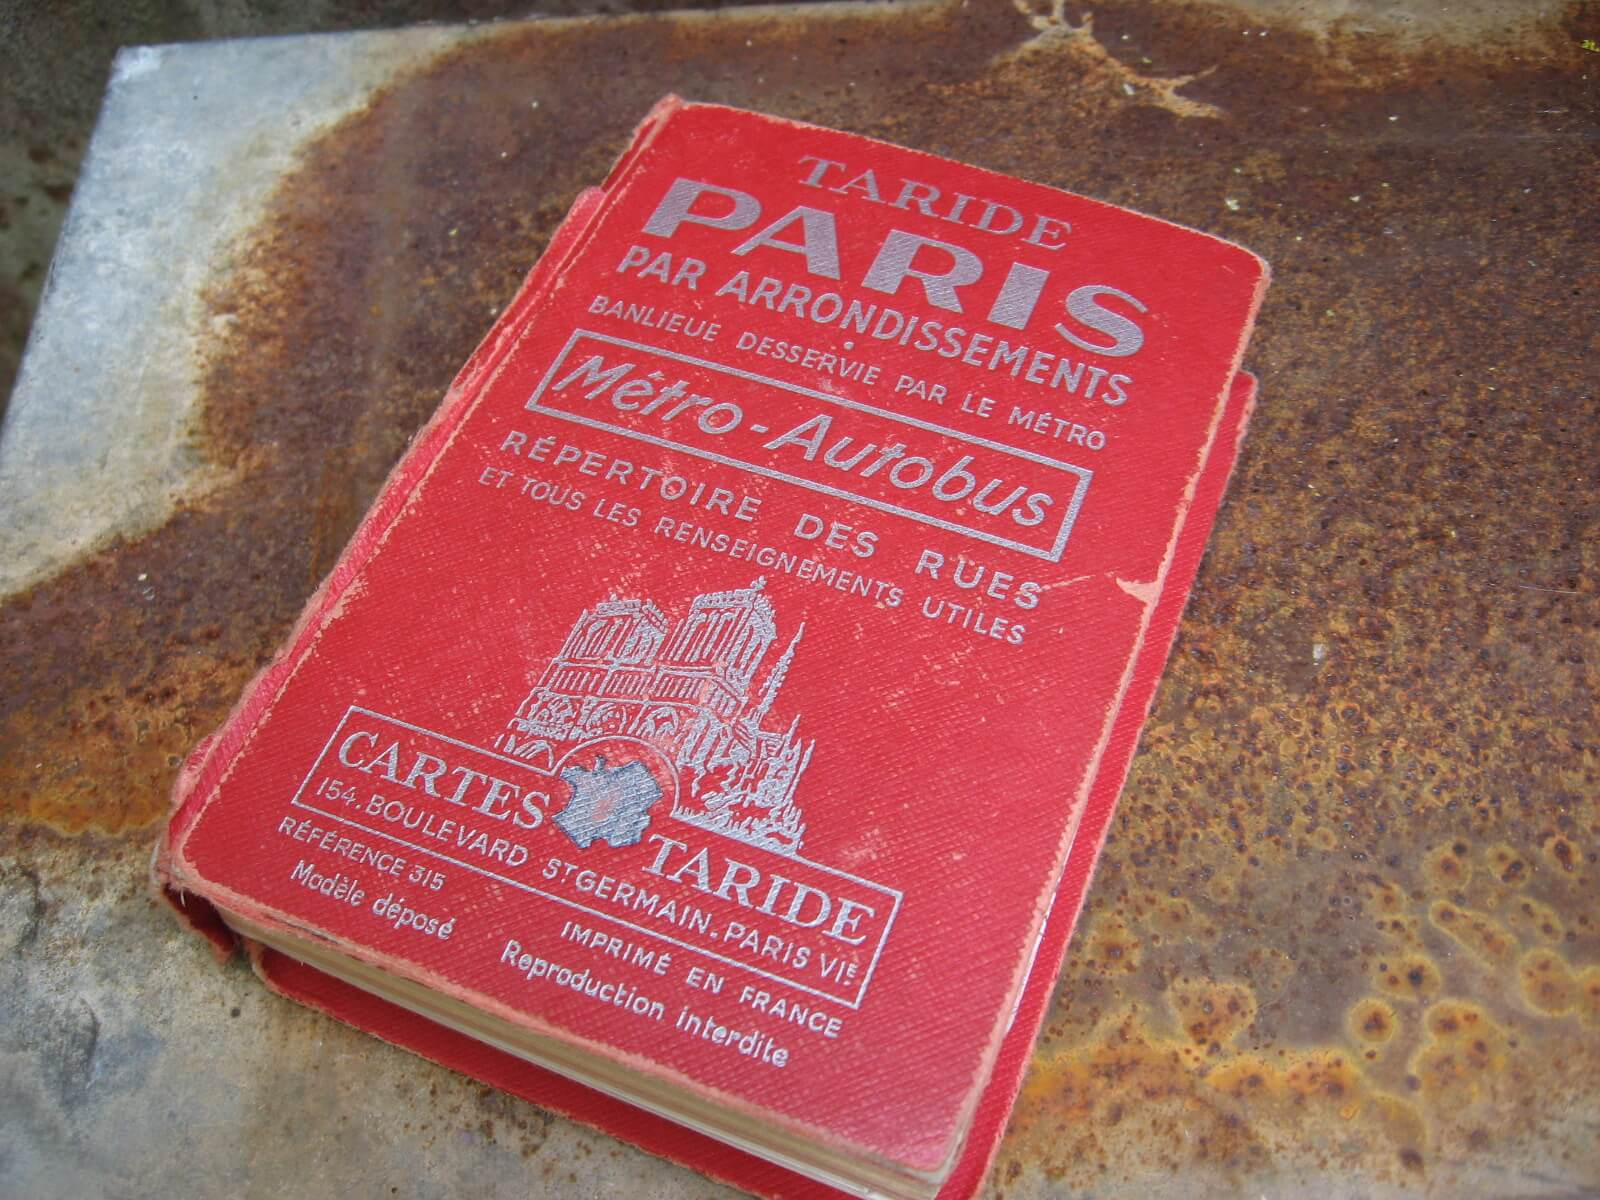 Taride Paris Map book 1966 at PumpjackPiddlewick